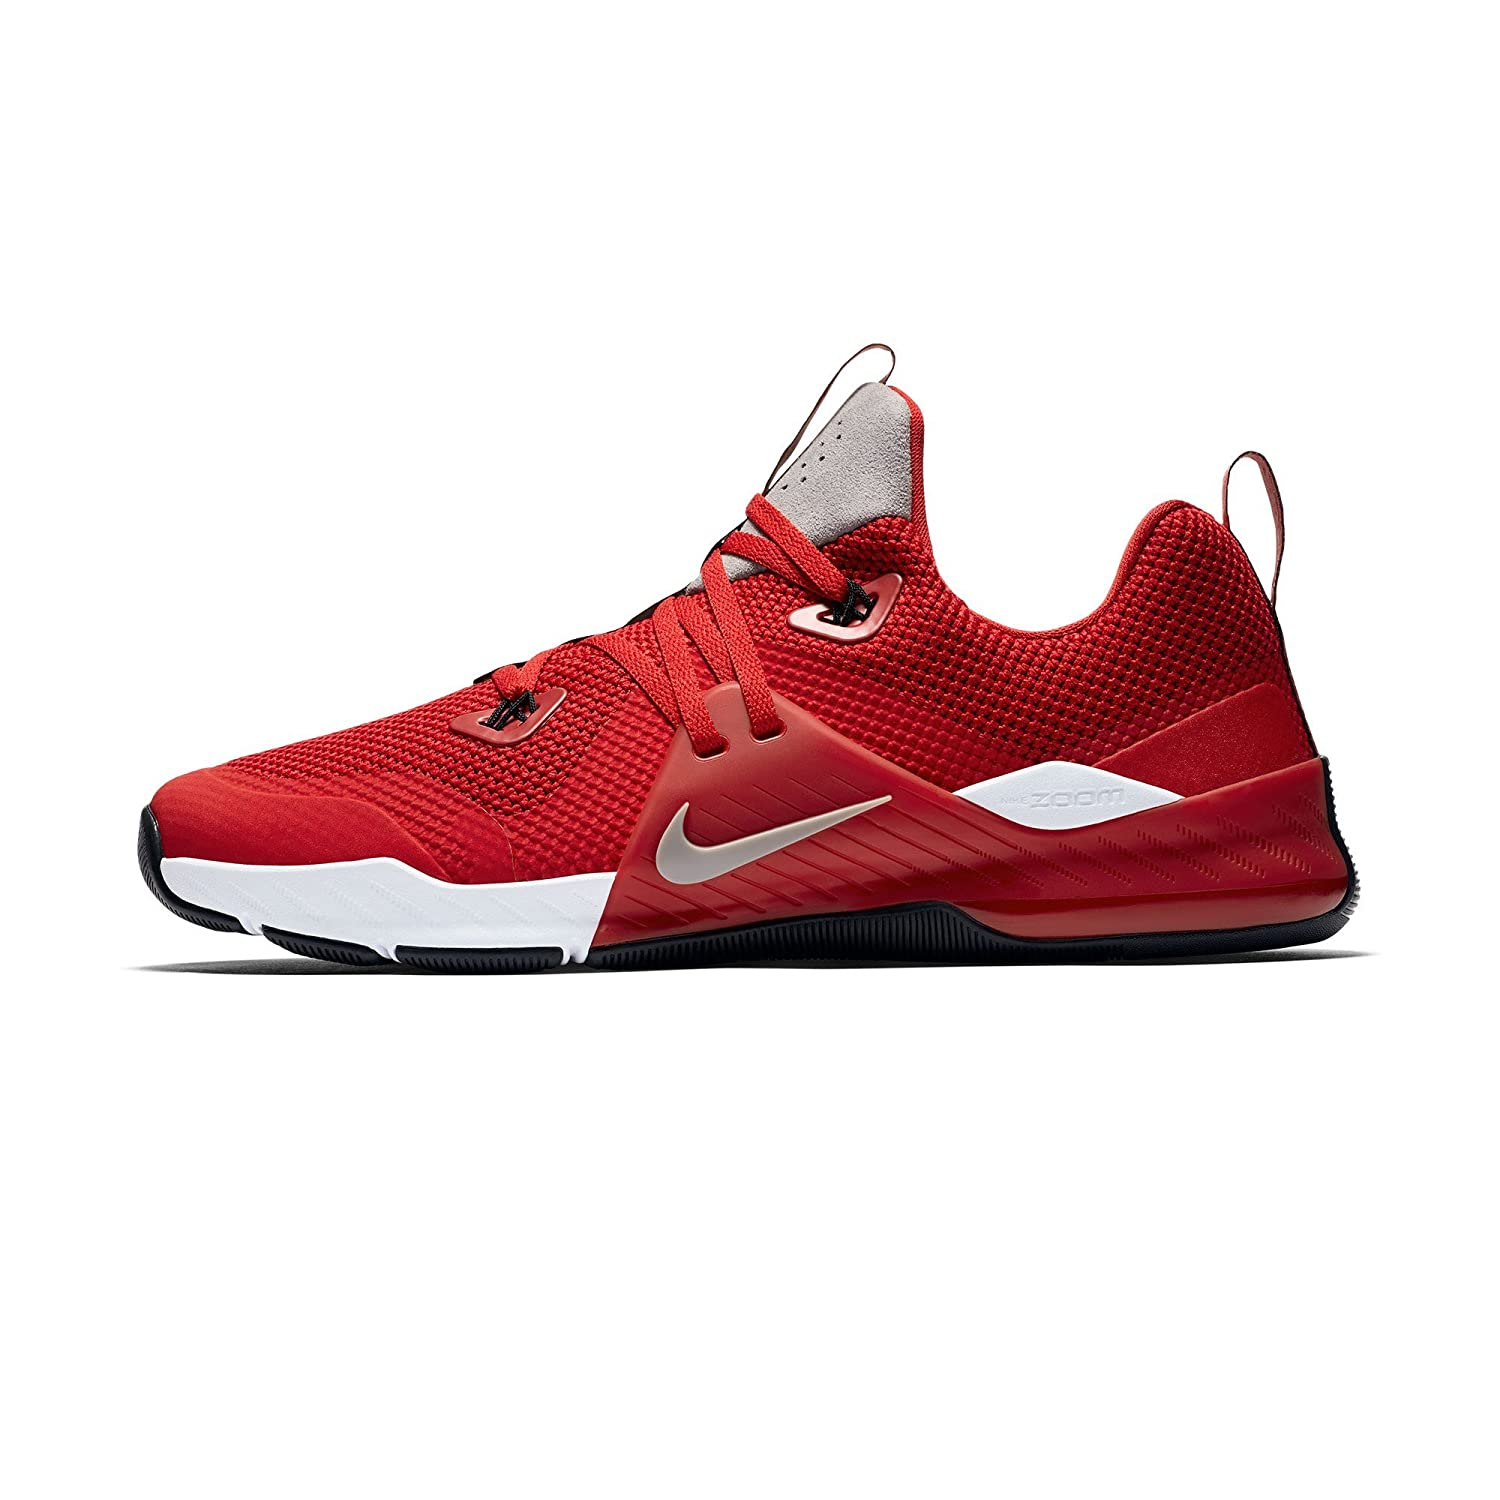 ca27f29a9ea77 Amazon.com  Nike Ohio State Buckeyes Zoom Train Command College Shoes - Size  Men s 11 M US  Clothing